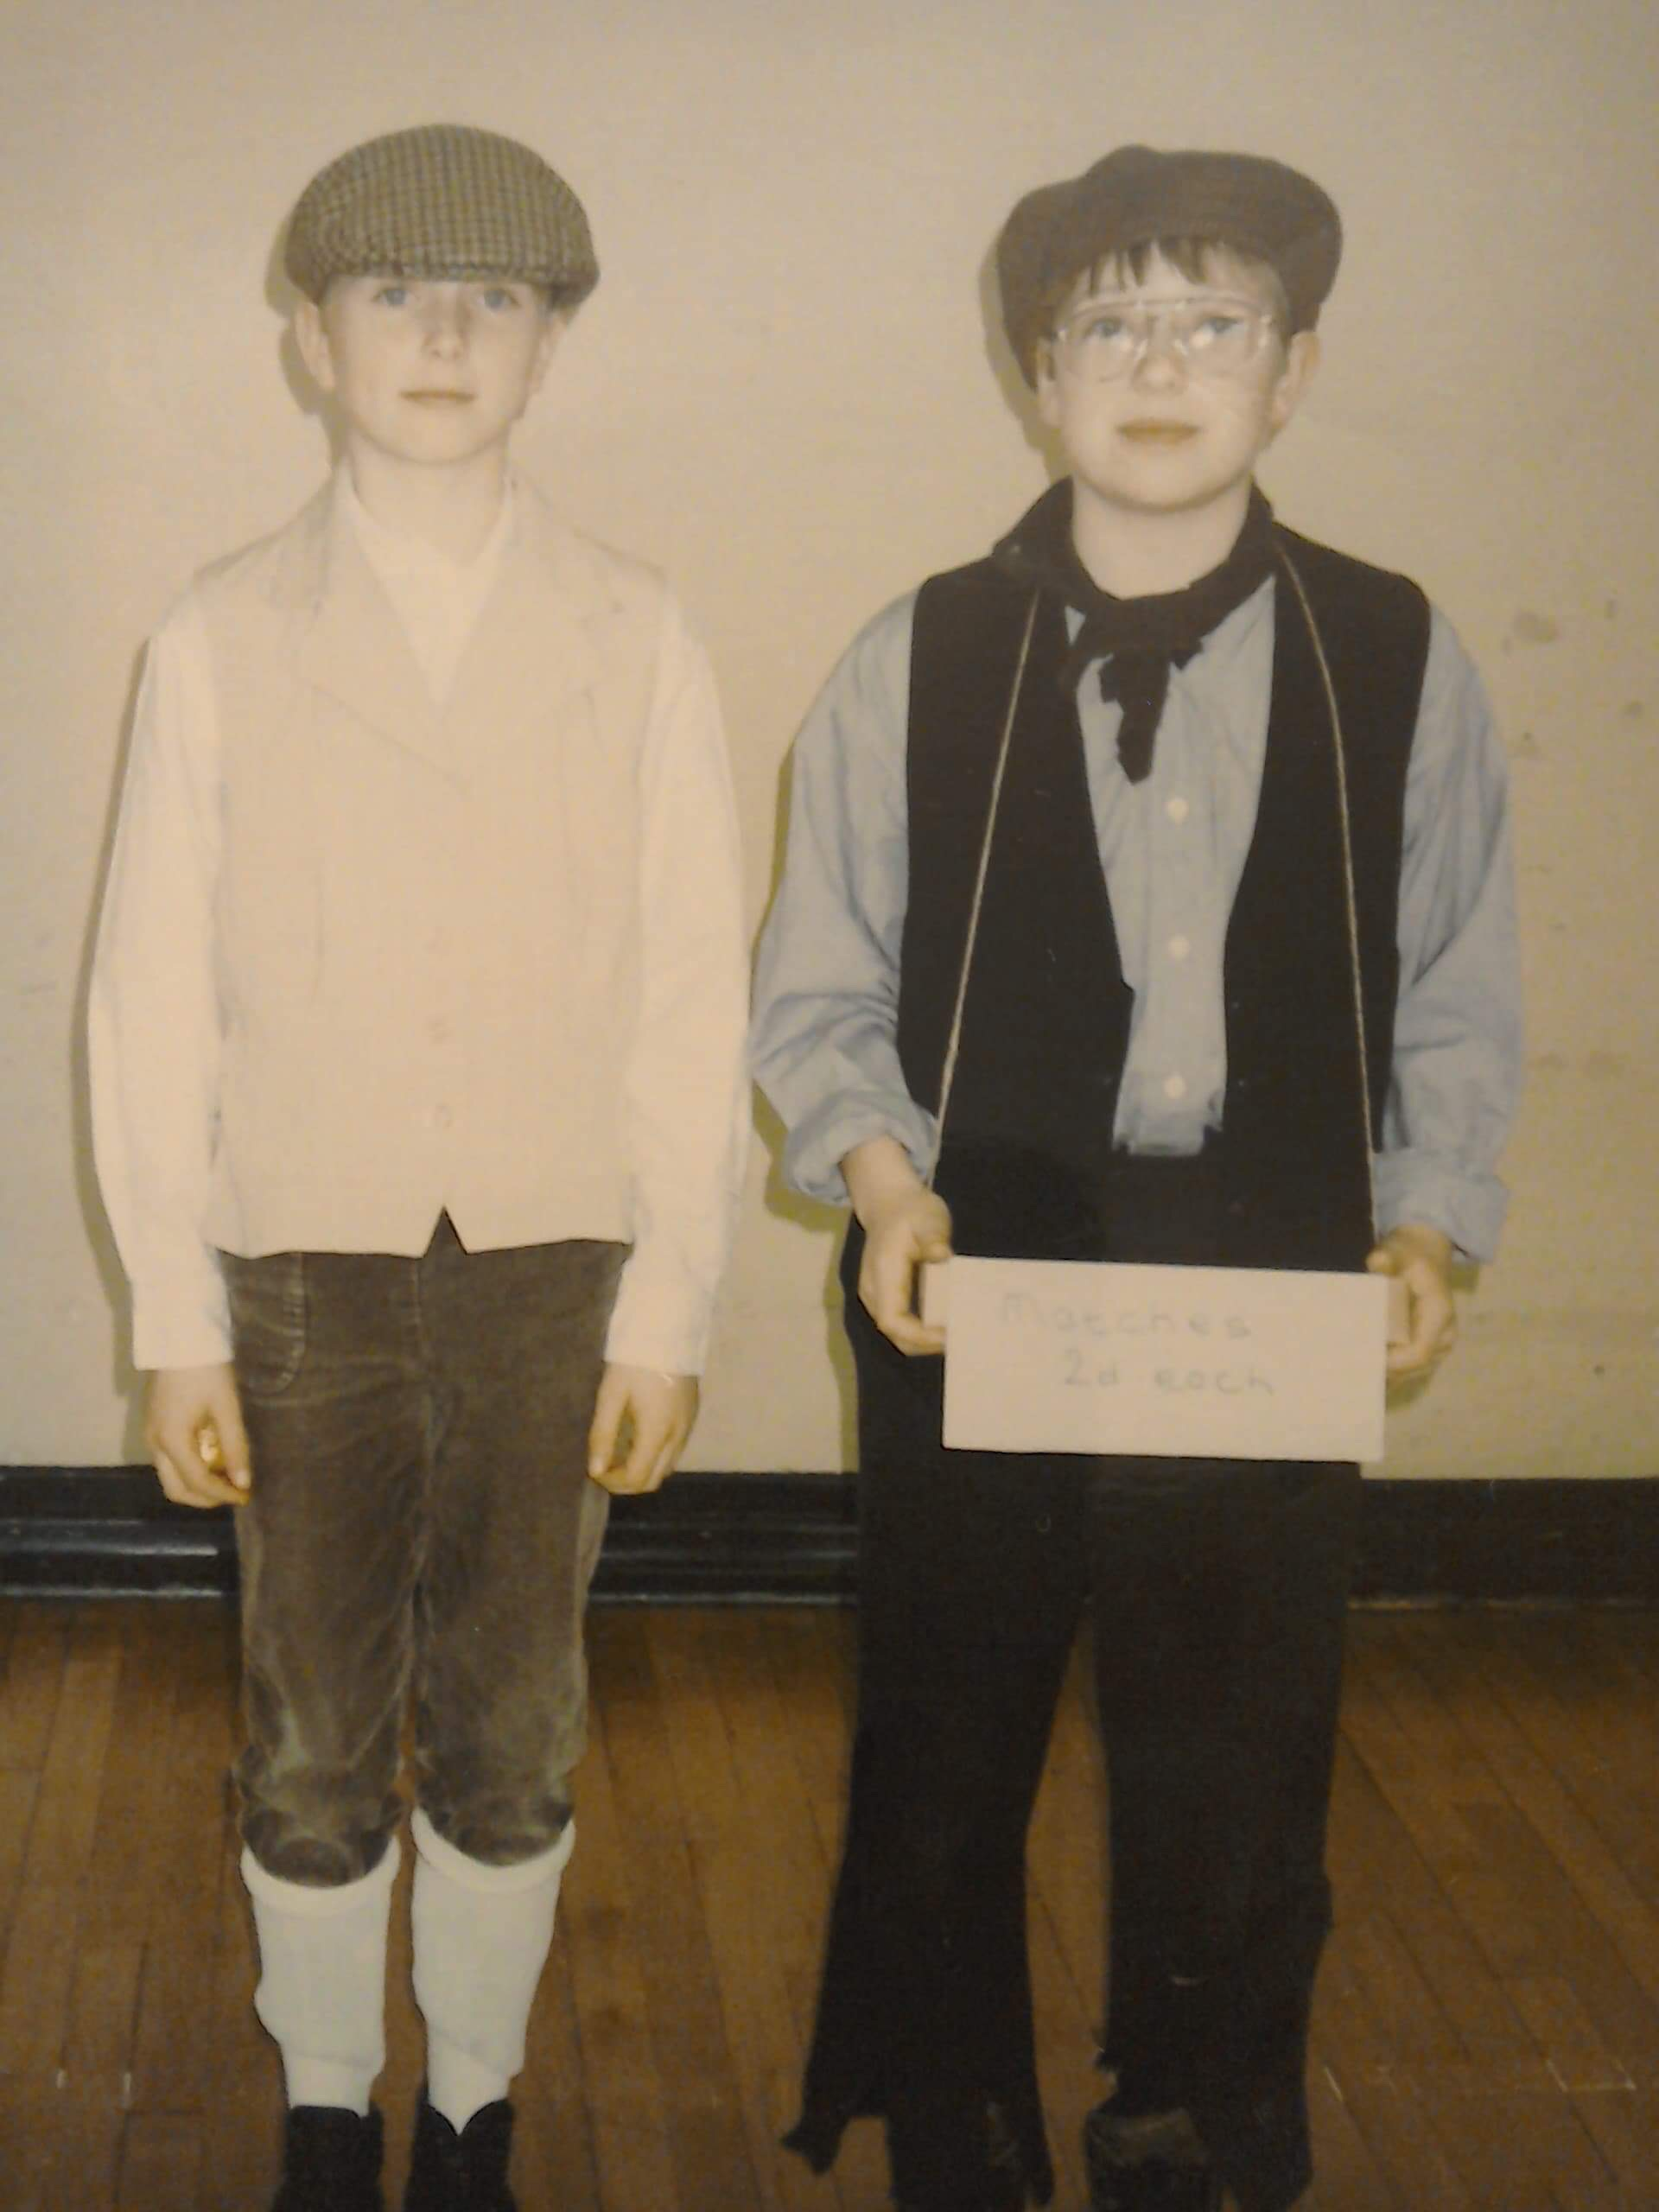 Me (on the right) and Raymond. He recently sent me this picture… LOOK HOW YOUNG AND PALE WE WERE! Apparently, I am a Victorian child. This is how old I am.